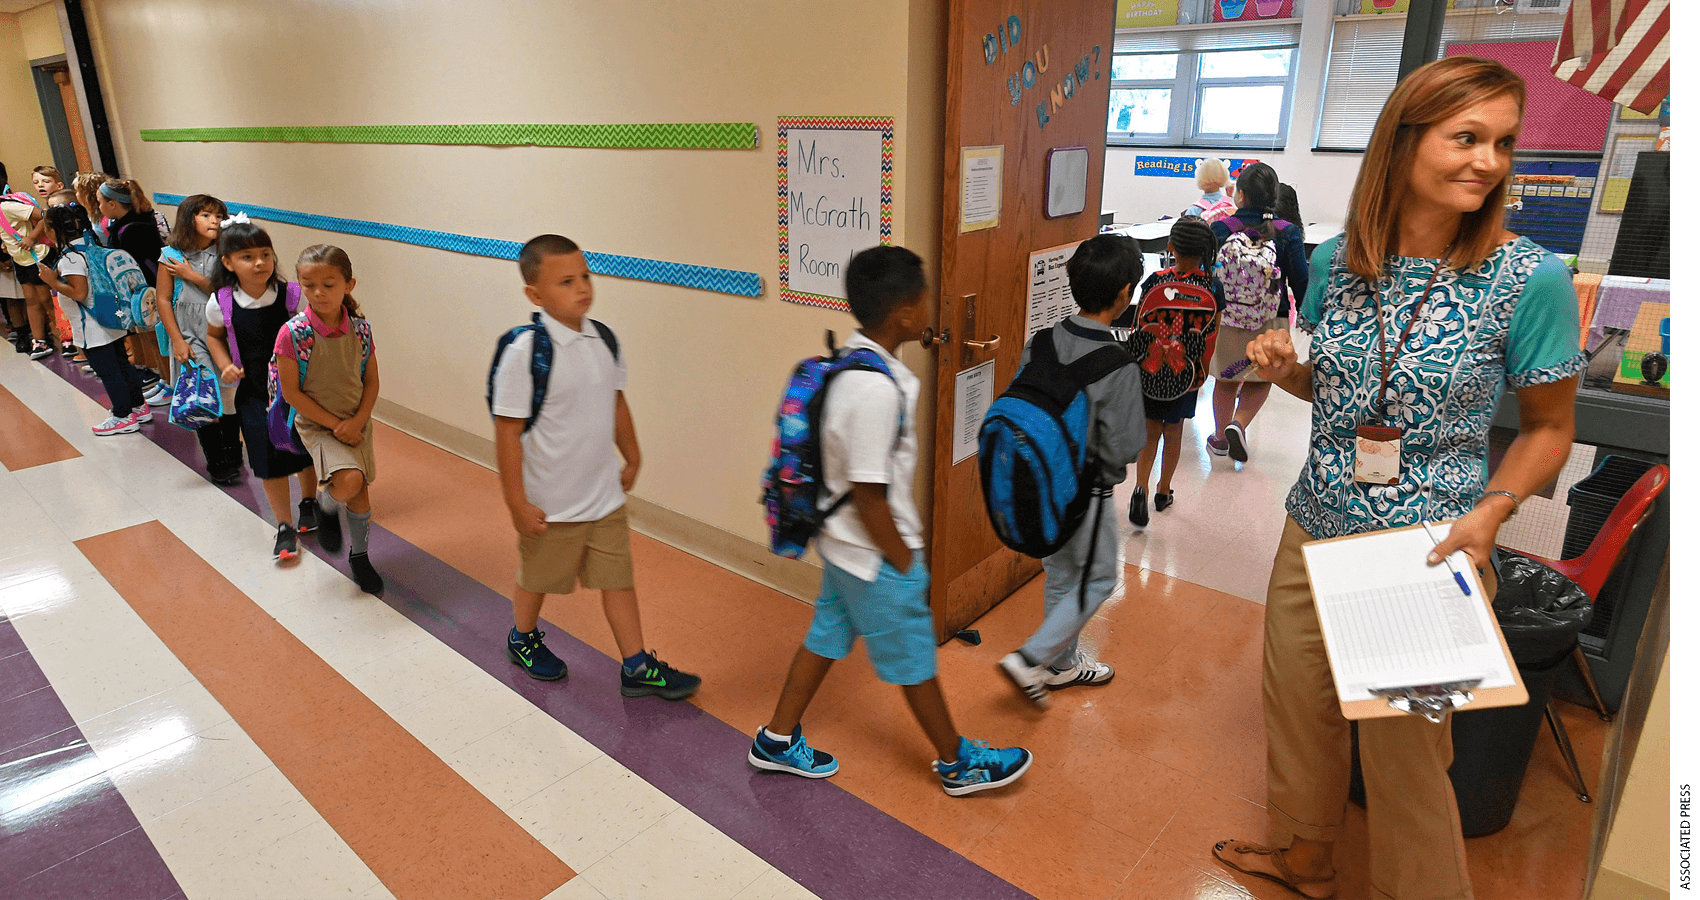 Teacher holding clipboard welcomes students as they enter classroom